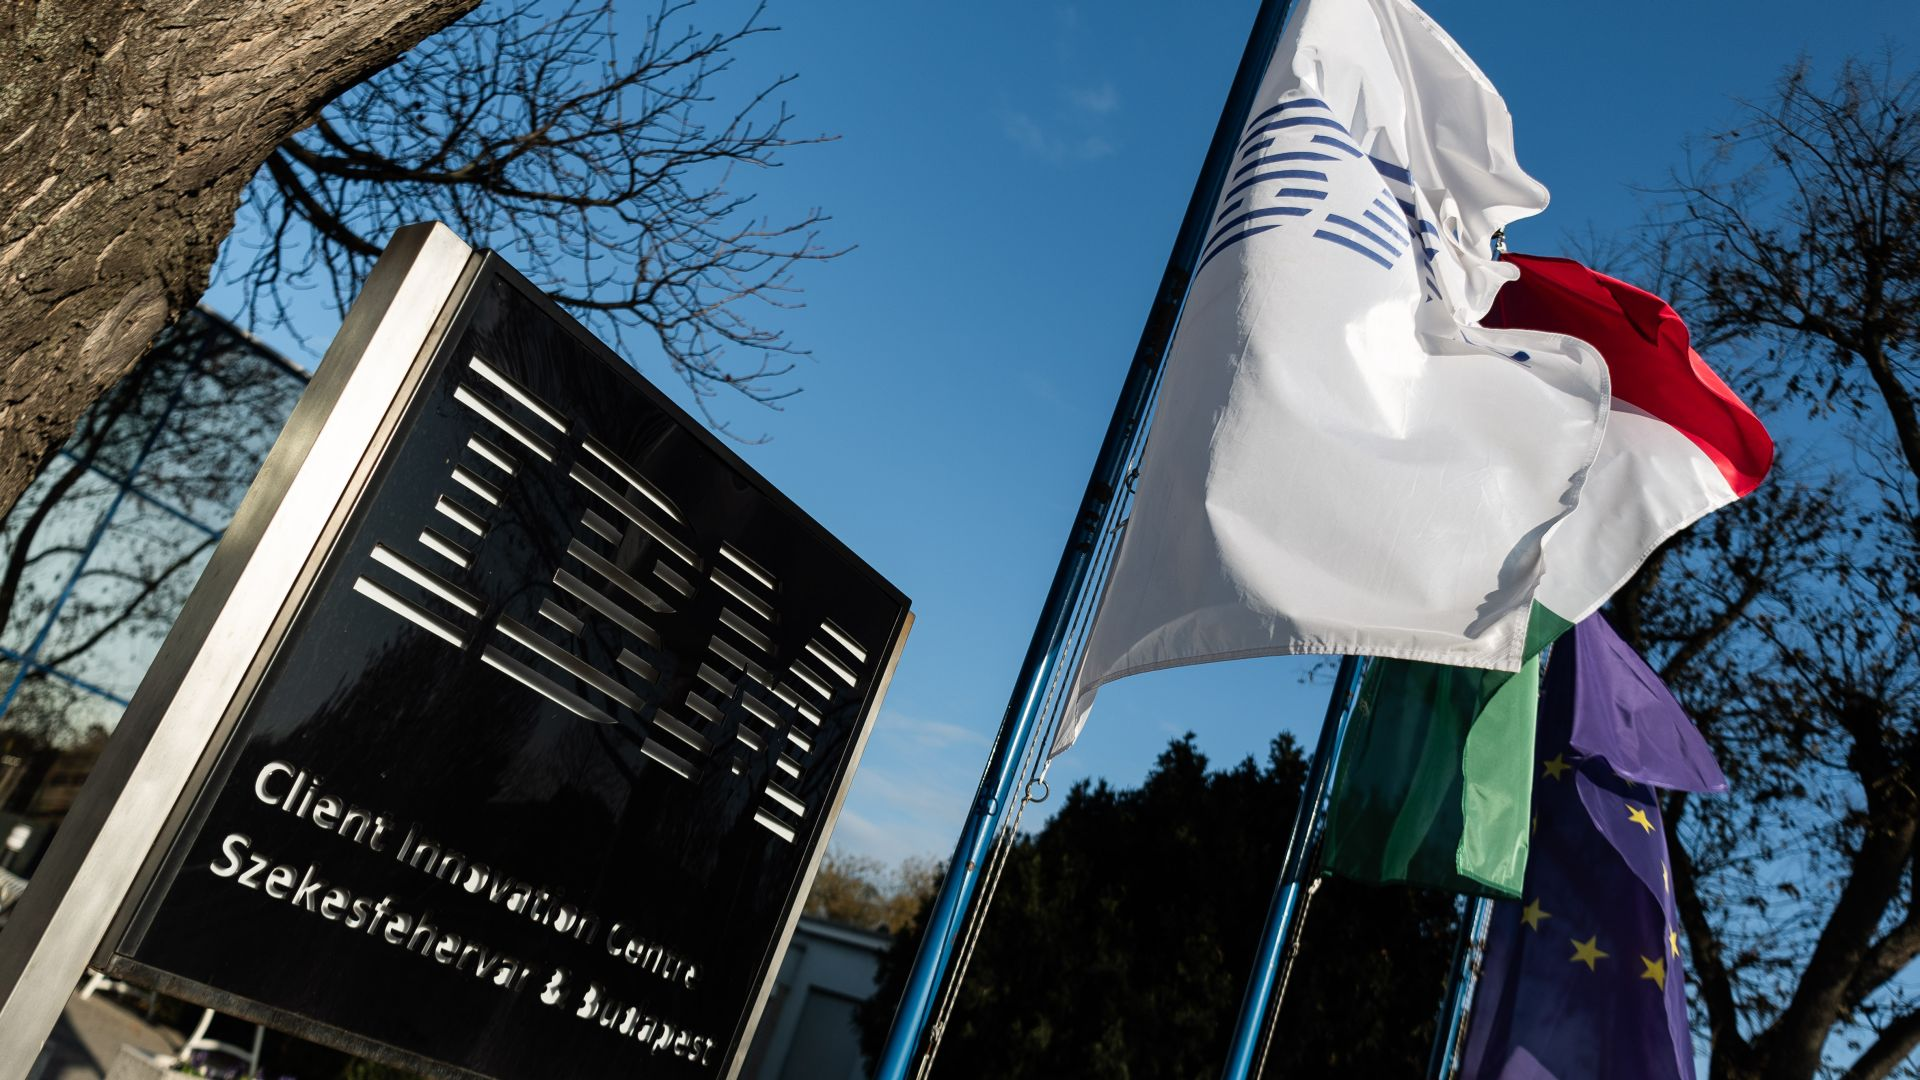 IBM is growing in Hungary - VIDEO REPORT